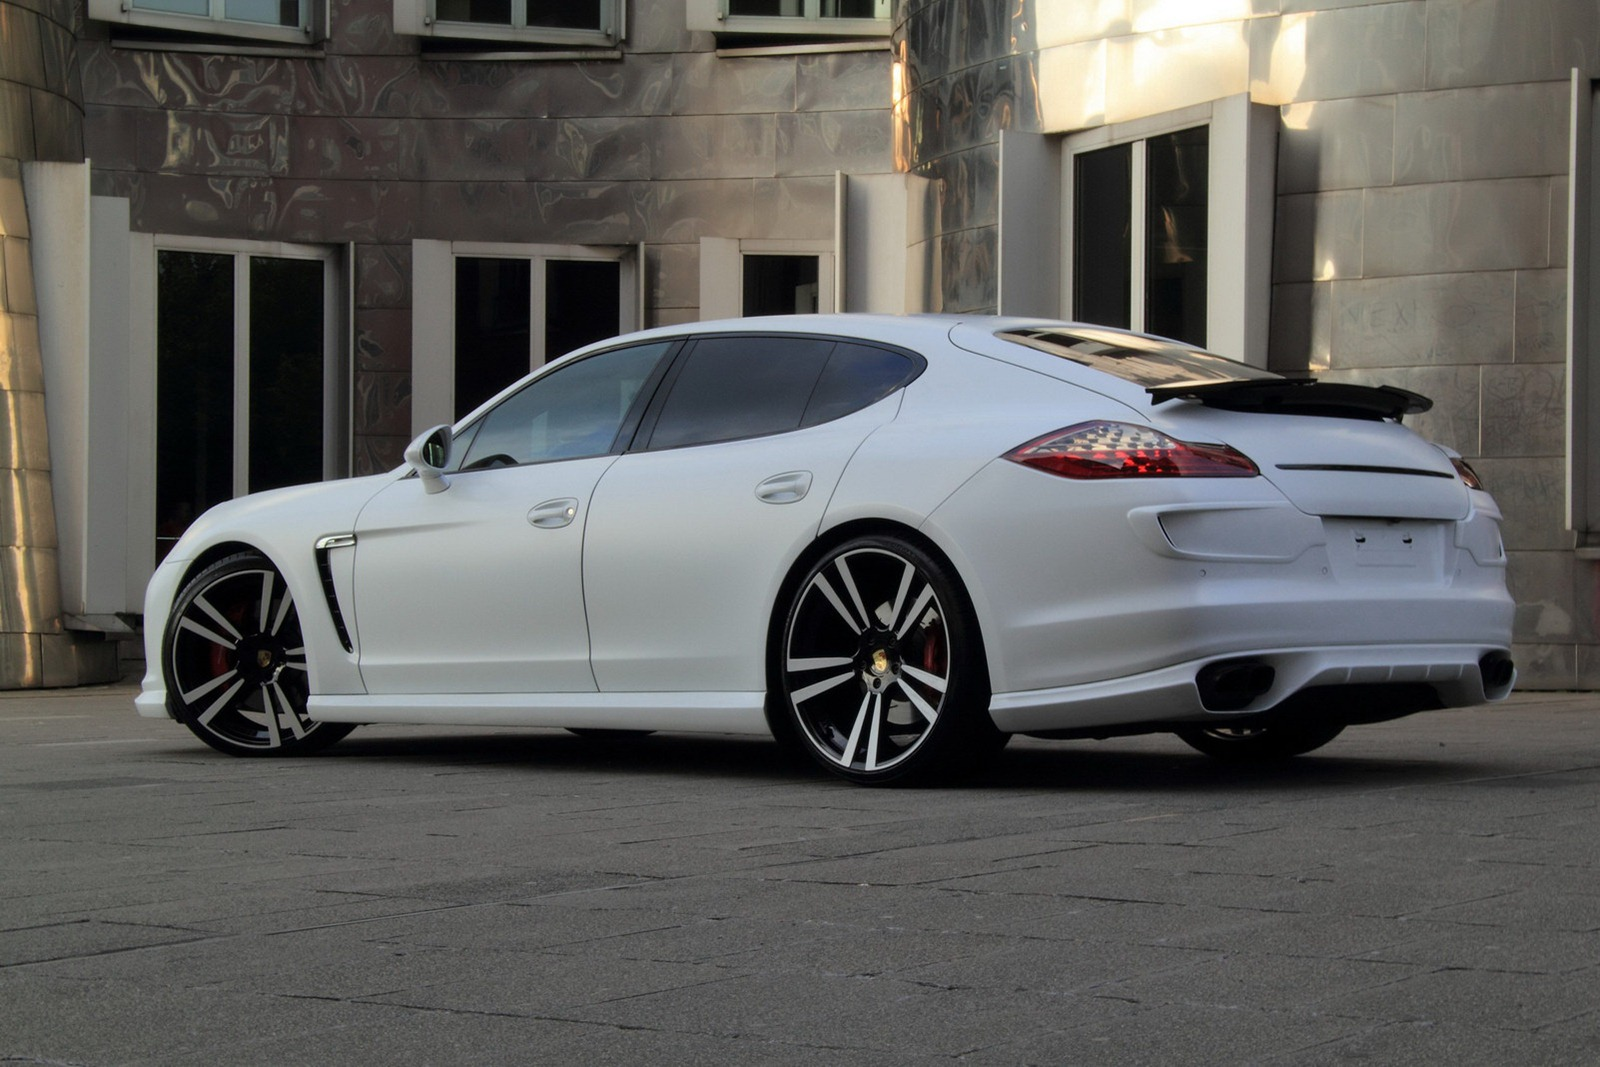 Panamera GTS Turbo  Cars  Pinterest  Porsche panamera Cars and